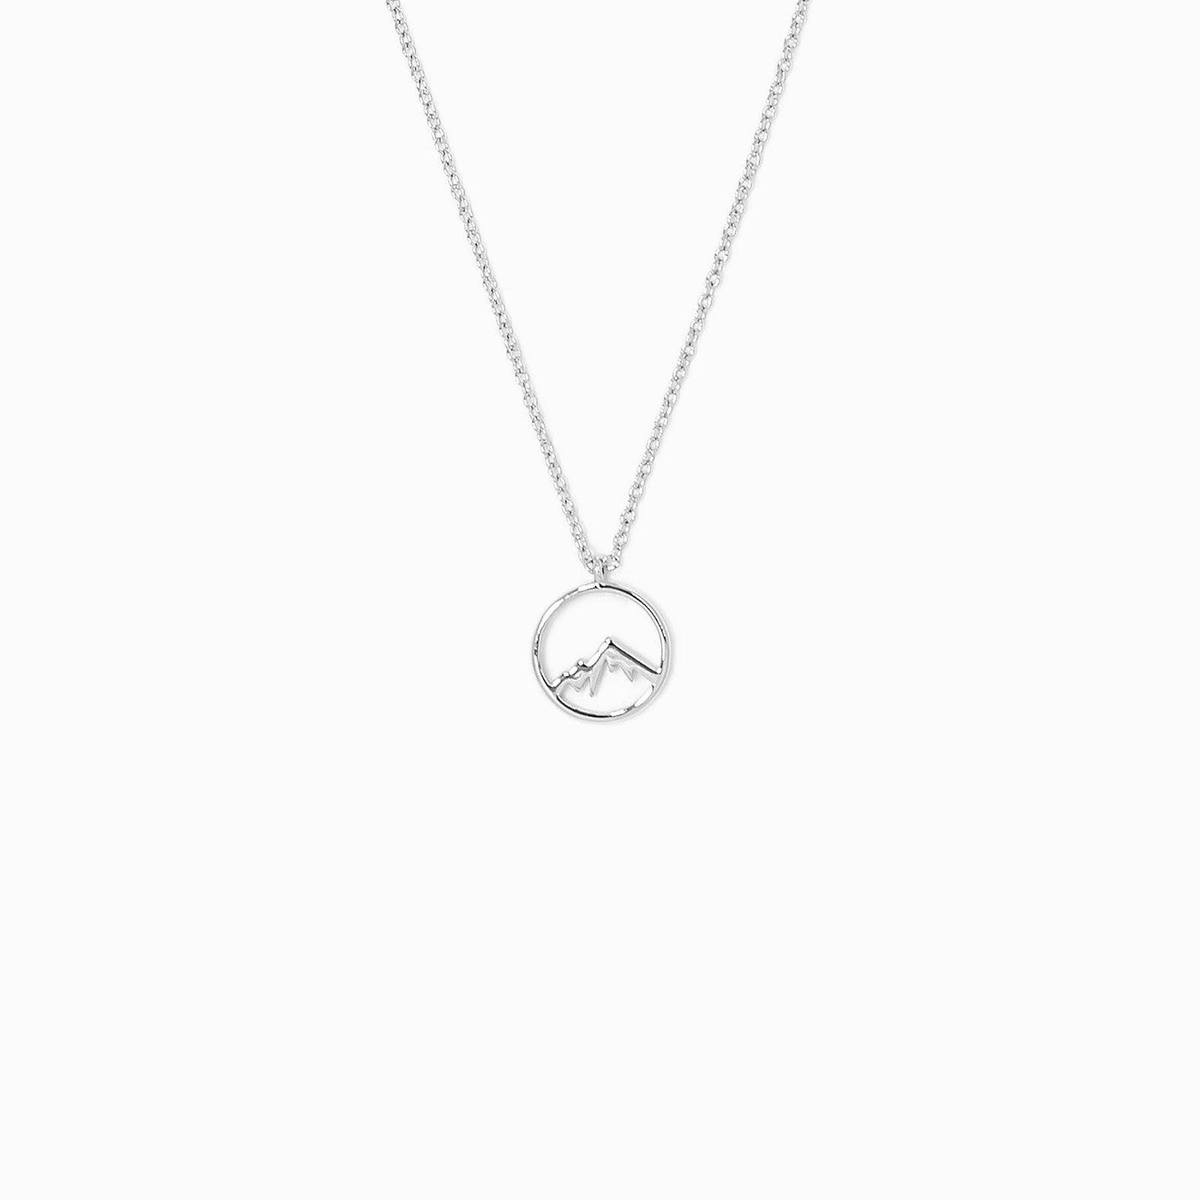 Silver Sierra Necklace by Pura Vida